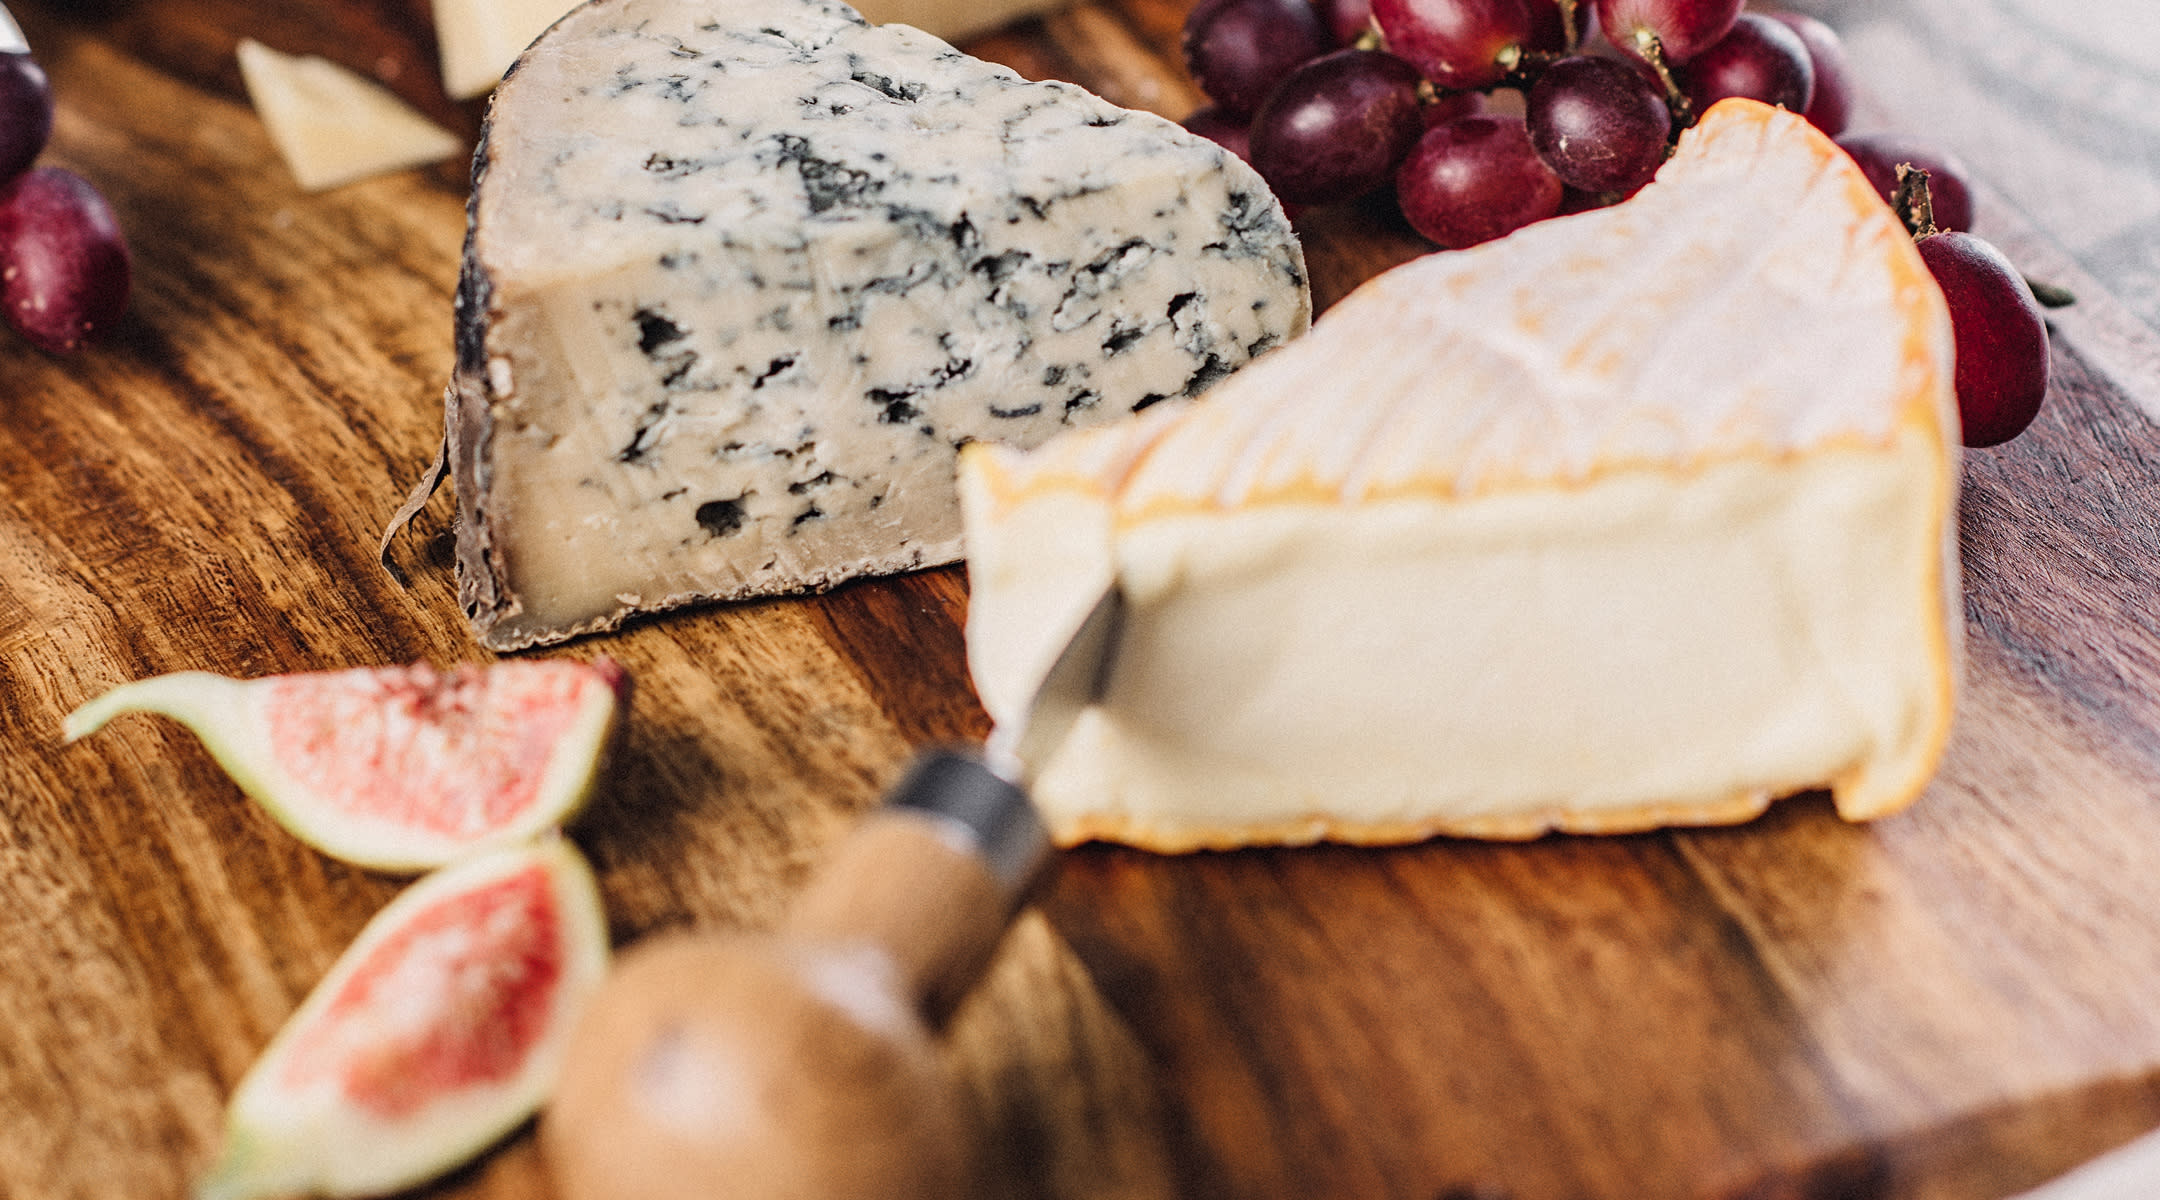 are soft cheeses safe to eat during pregnancy